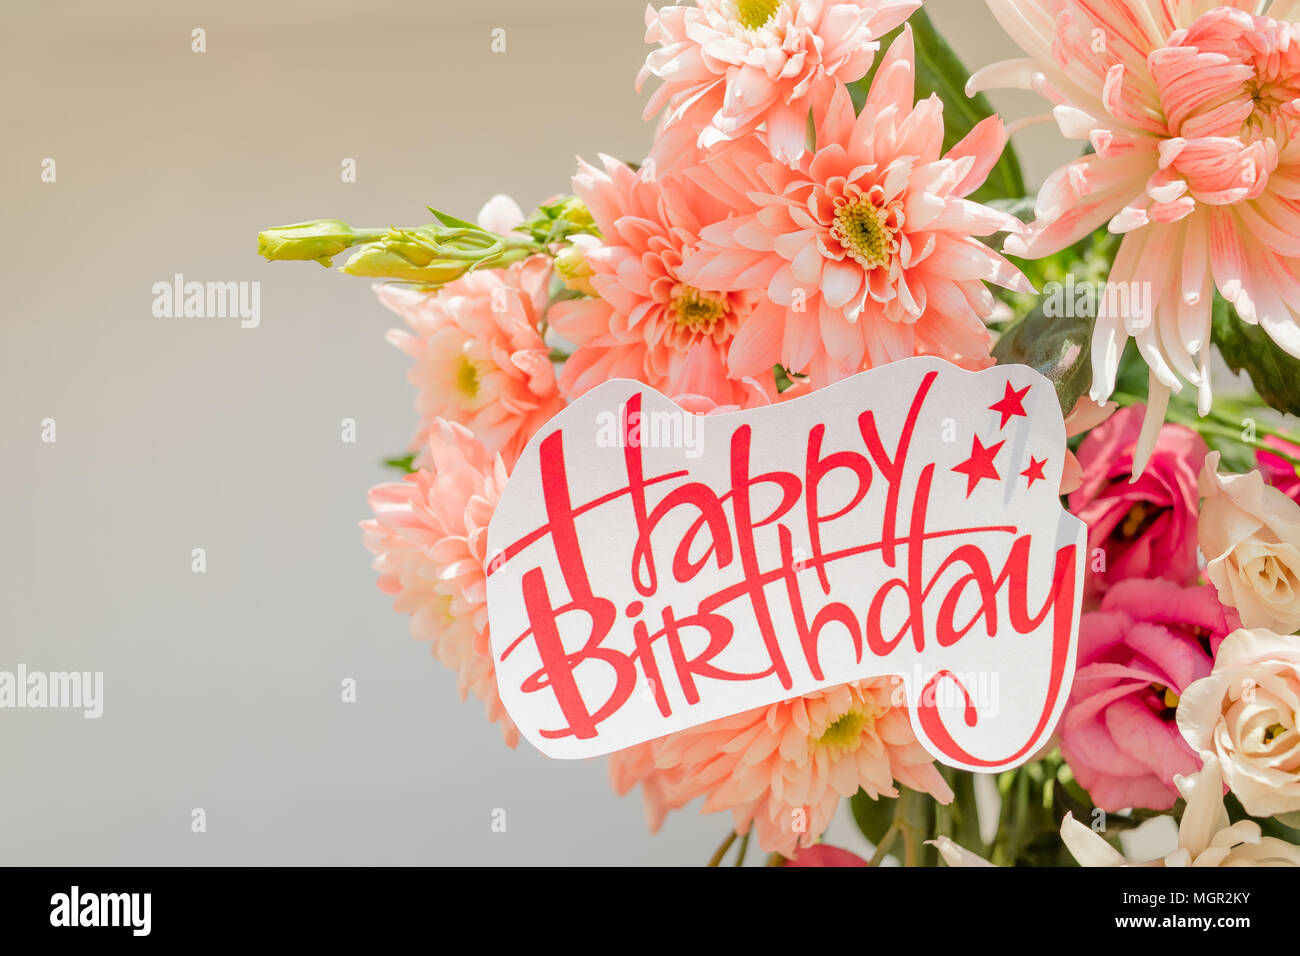 Soft Pink Chrysanthemums And Happy Birthday Posterbeautiful Flowers With A Text SignboardHappy Greeting Card Spring Bouquet